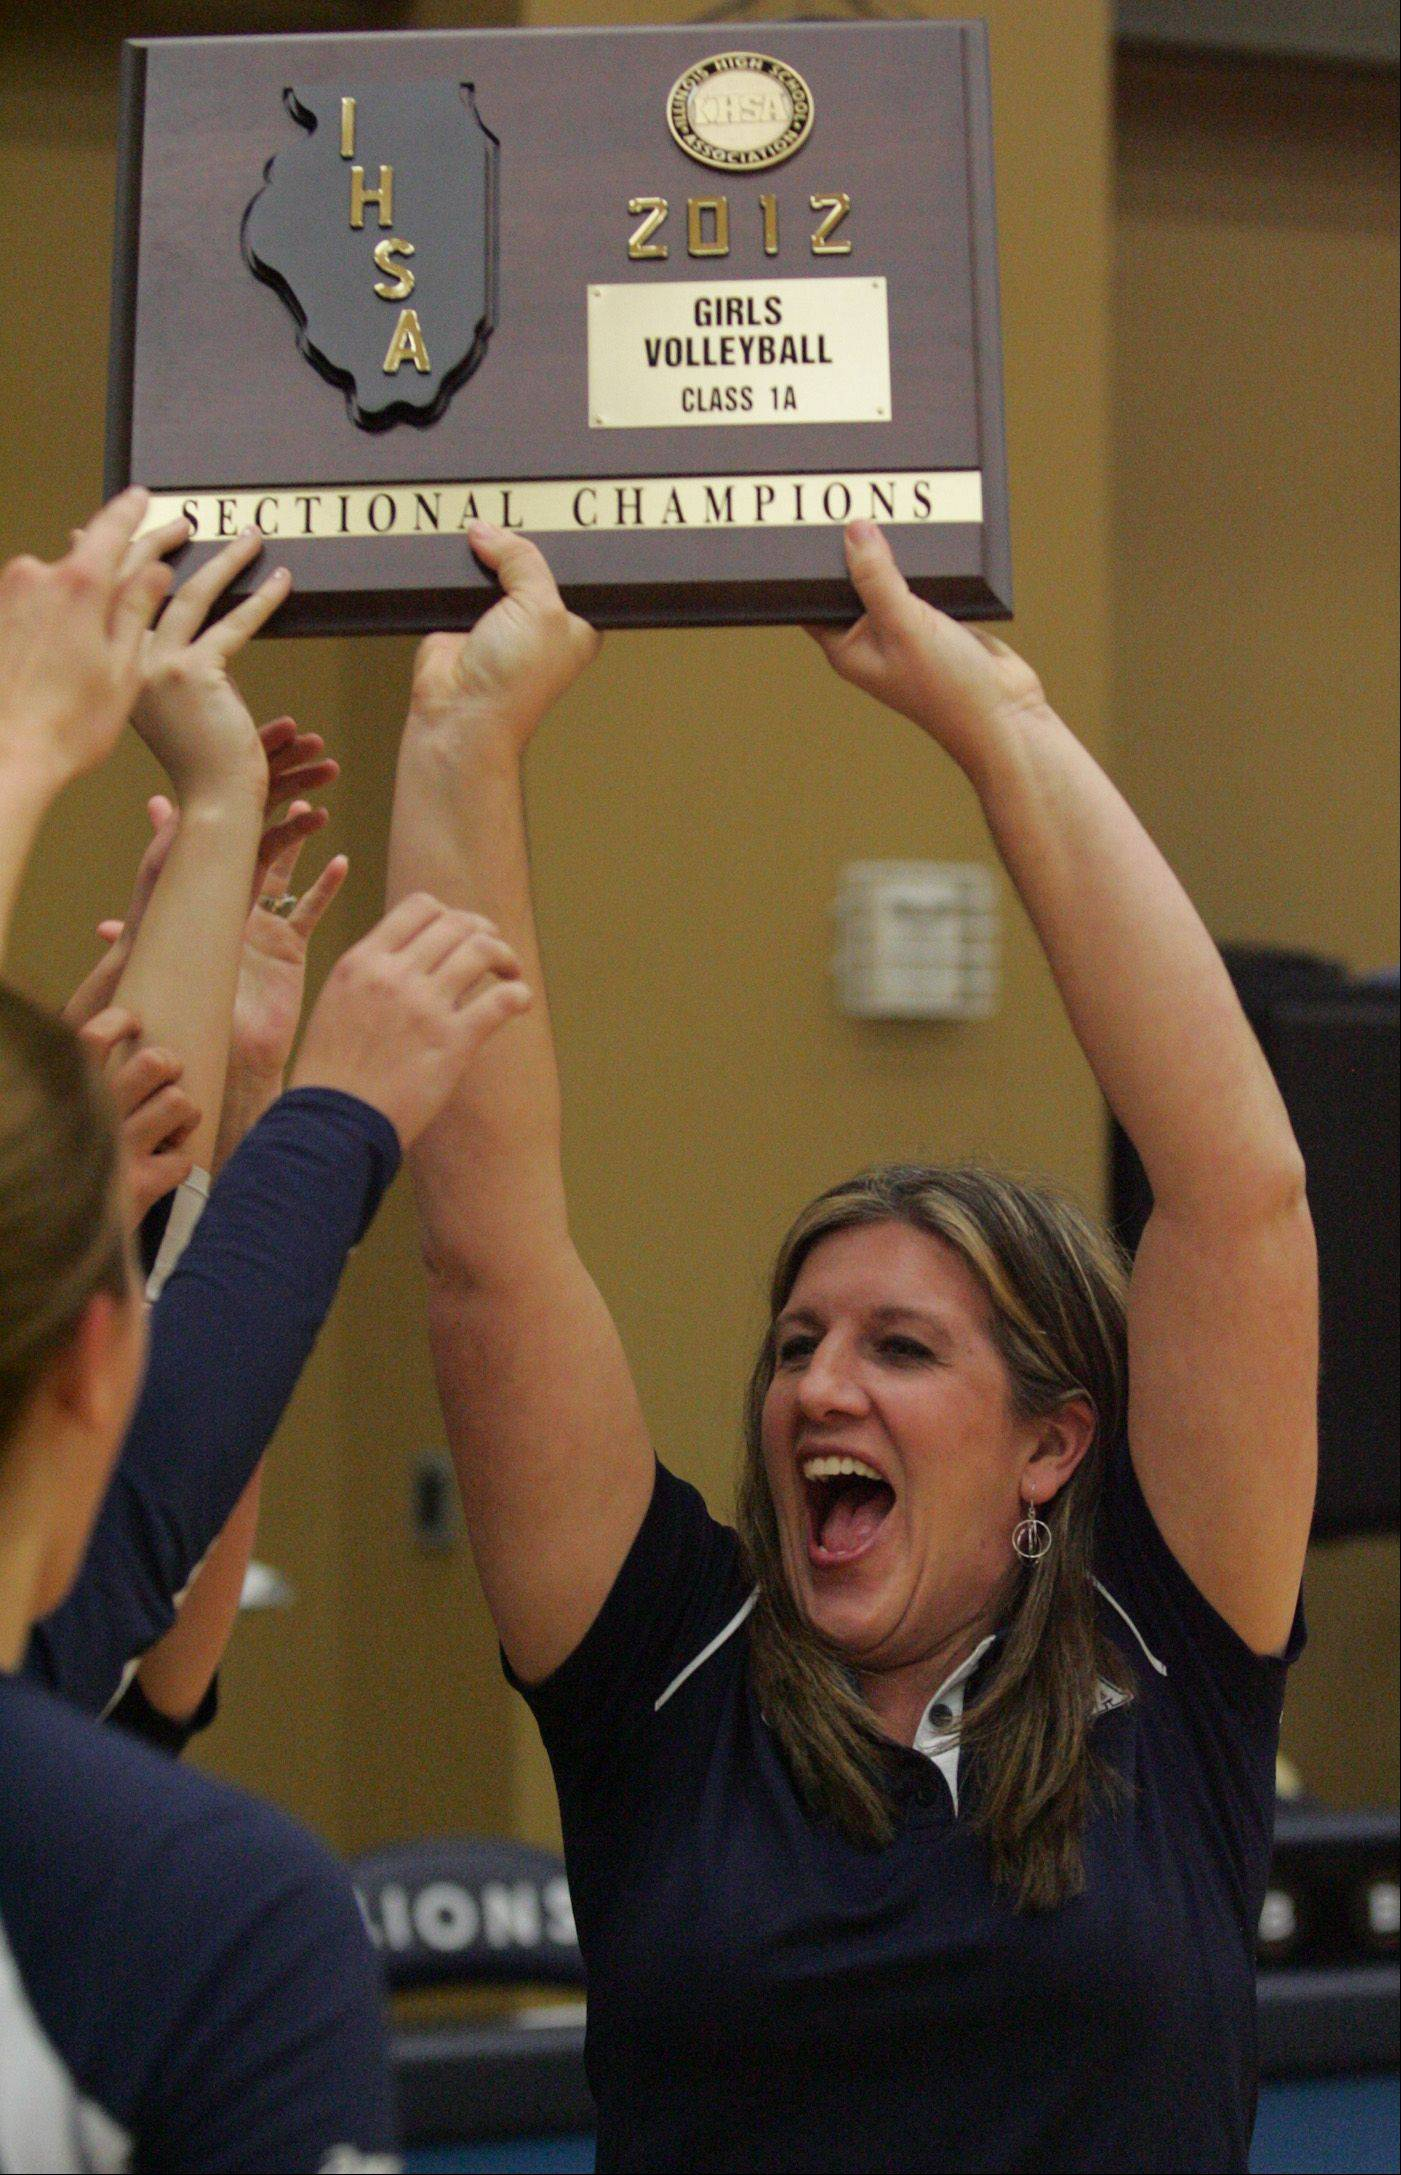 Harvest Christian coach Kim Floyd accepts the Class 1A sectional title trophy for her team after their win Thursday night over Morgan Park Academy.